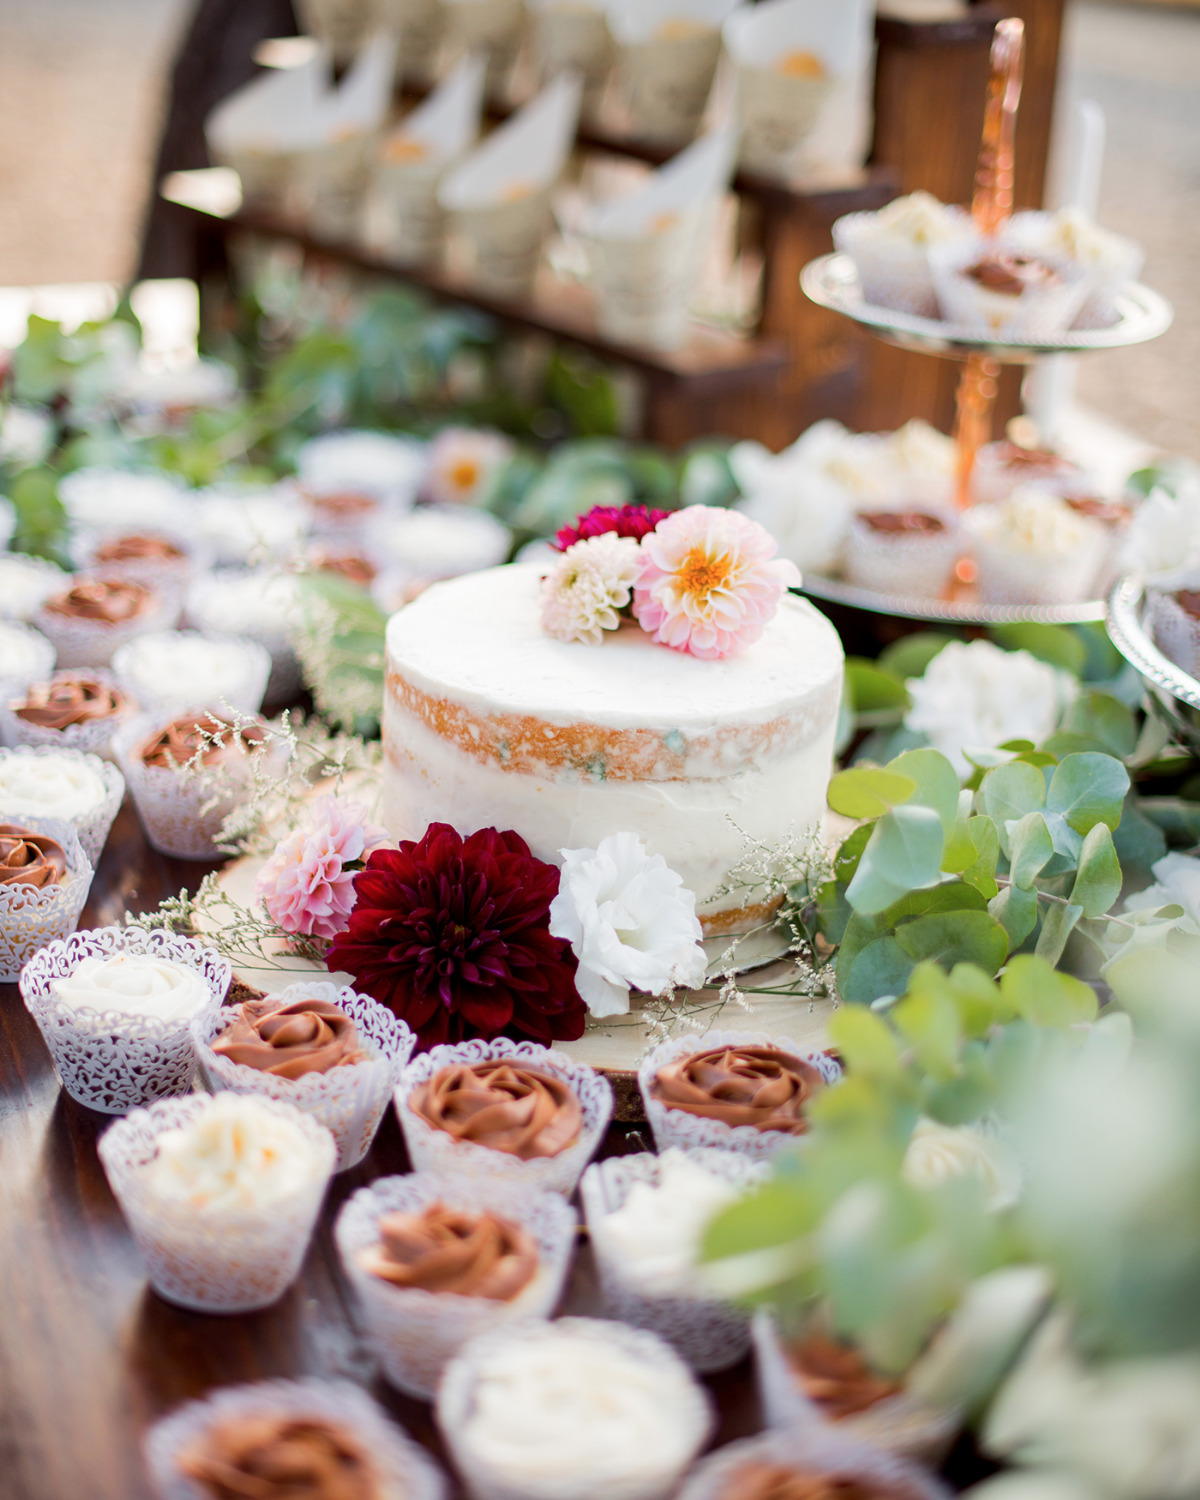 cupcakes and small wedding cake